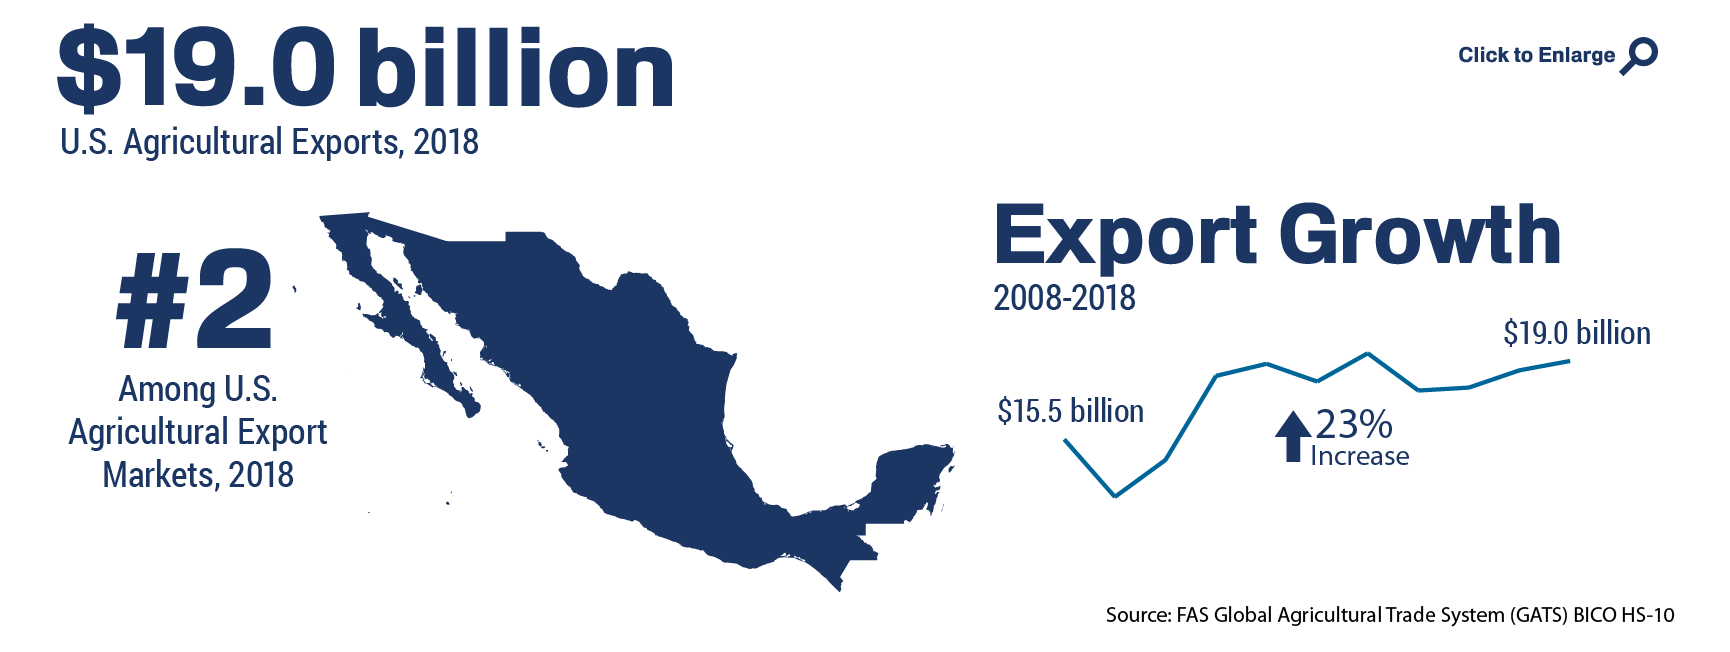 Infographic showing the ranking and total of U.S. agricultural trade to Mexico in 2018